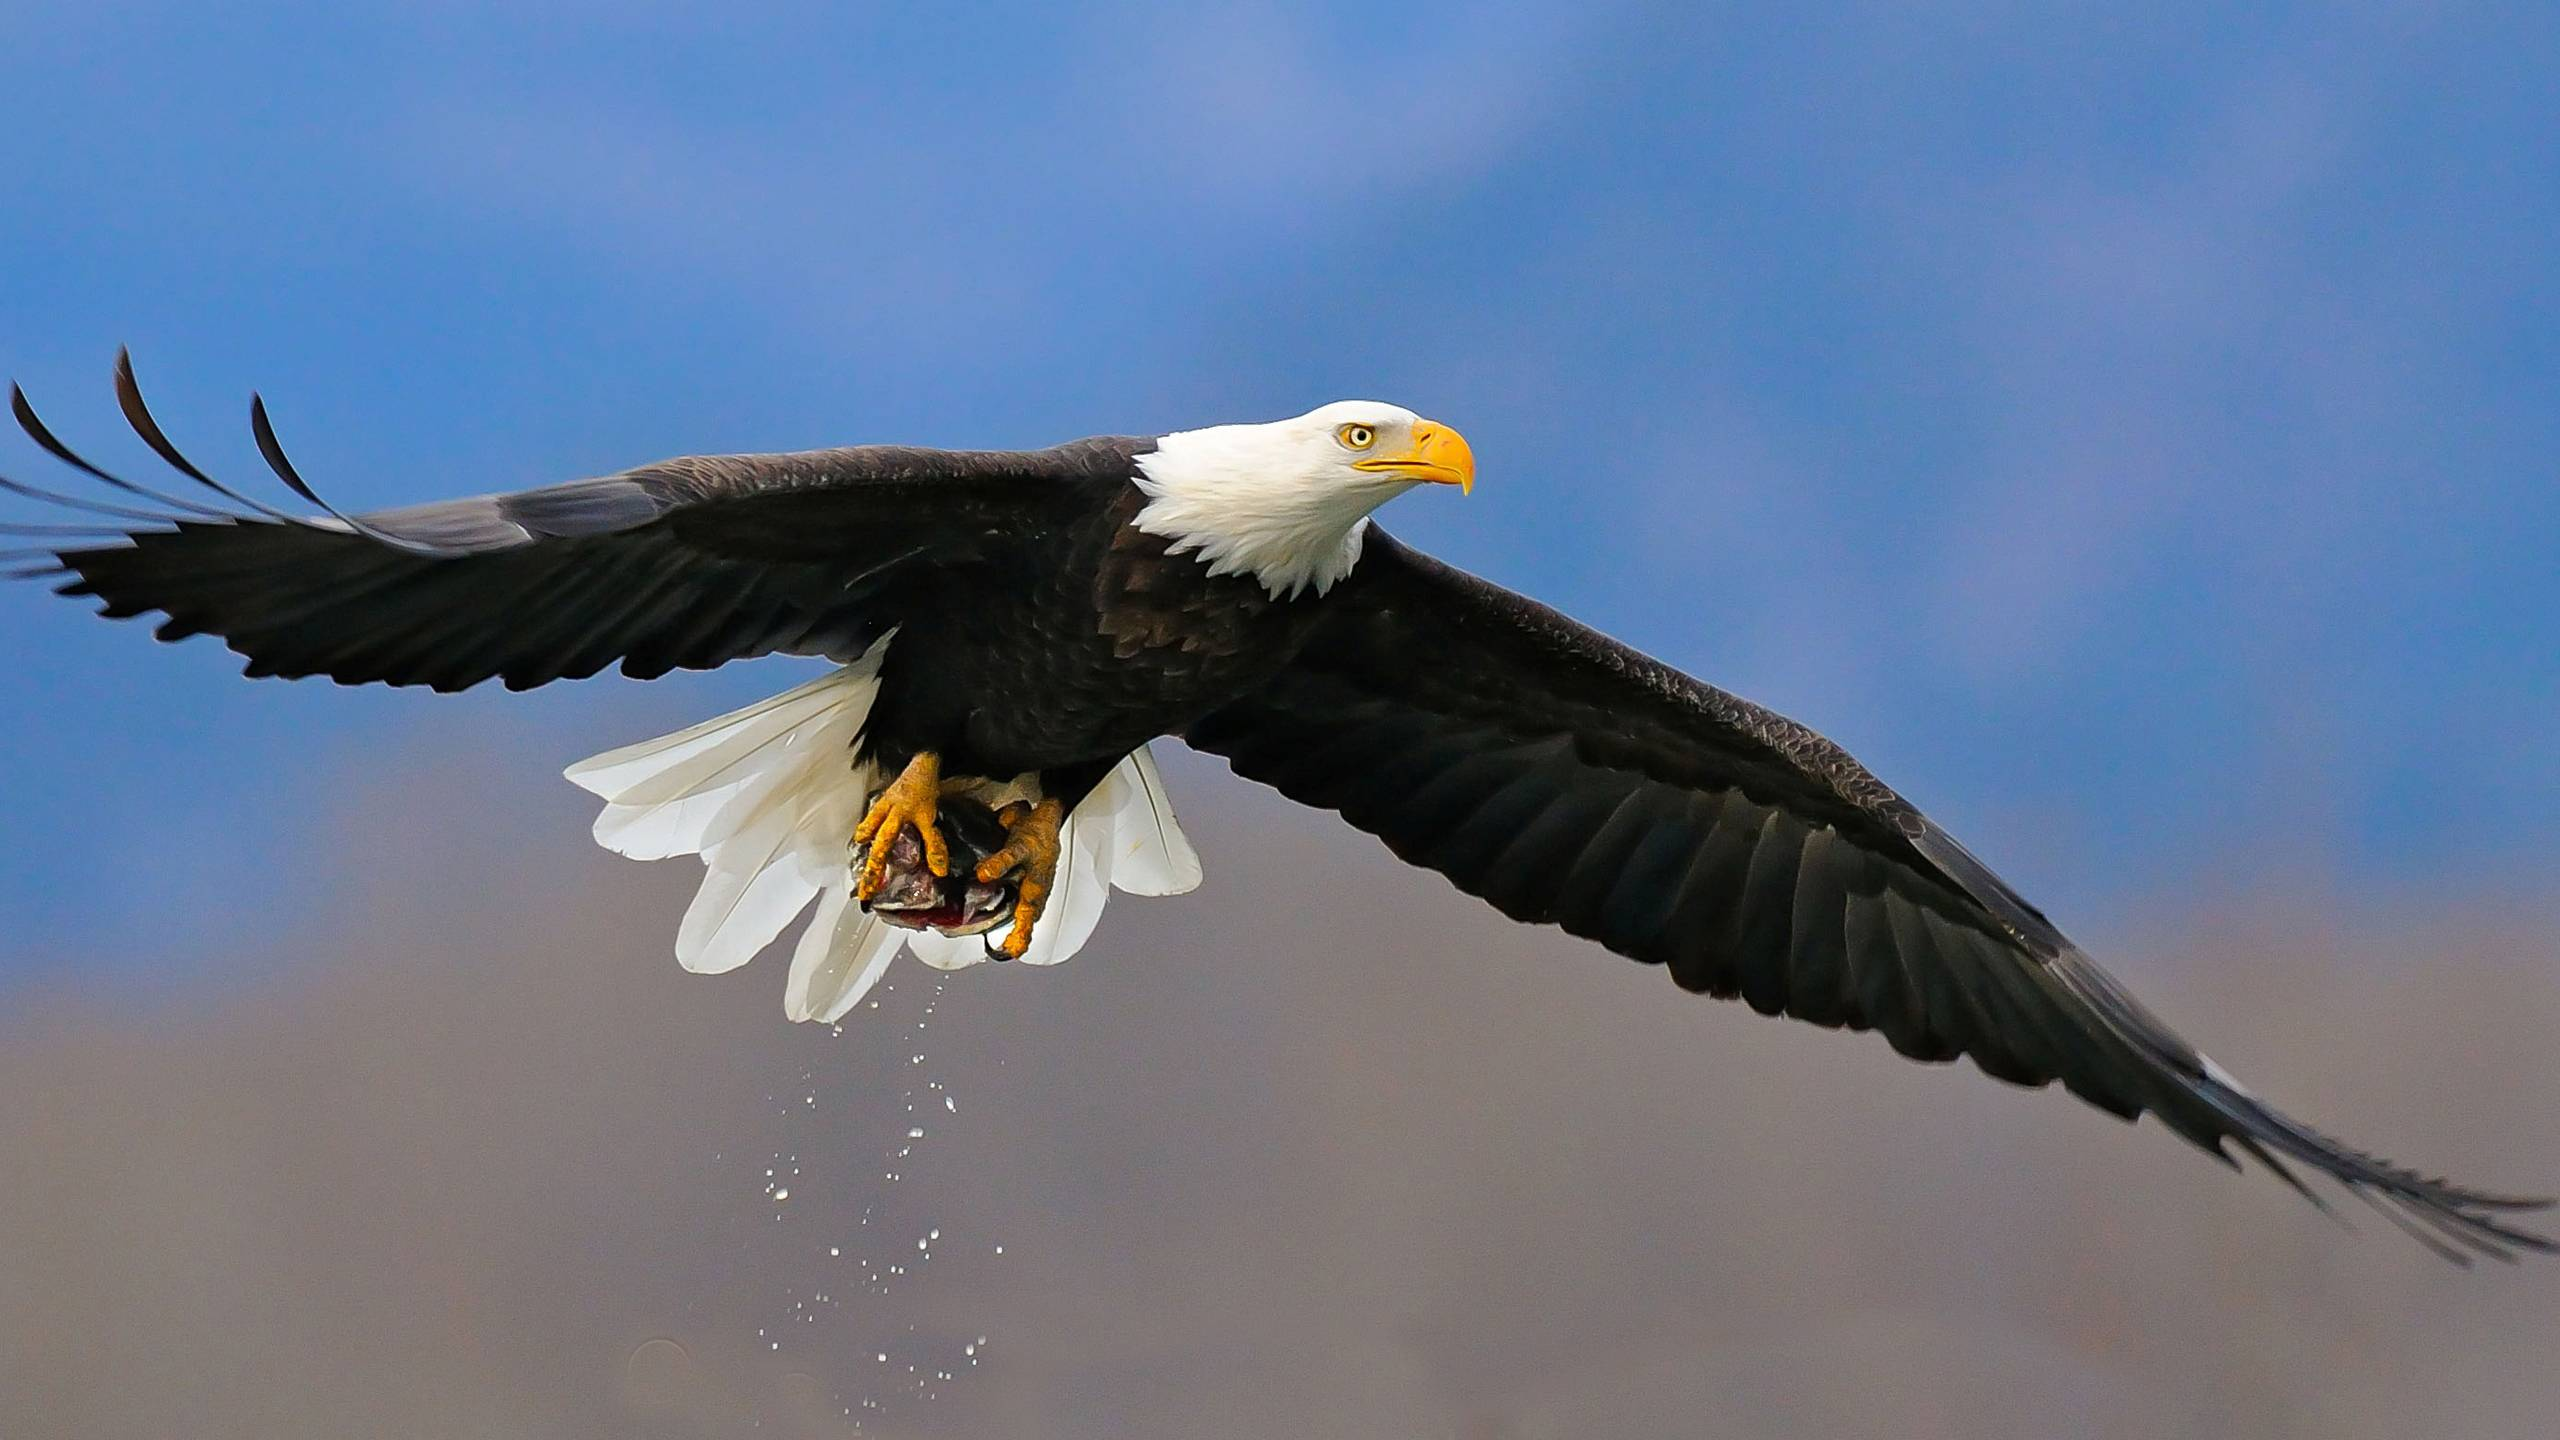 Hd Bald Eagle On